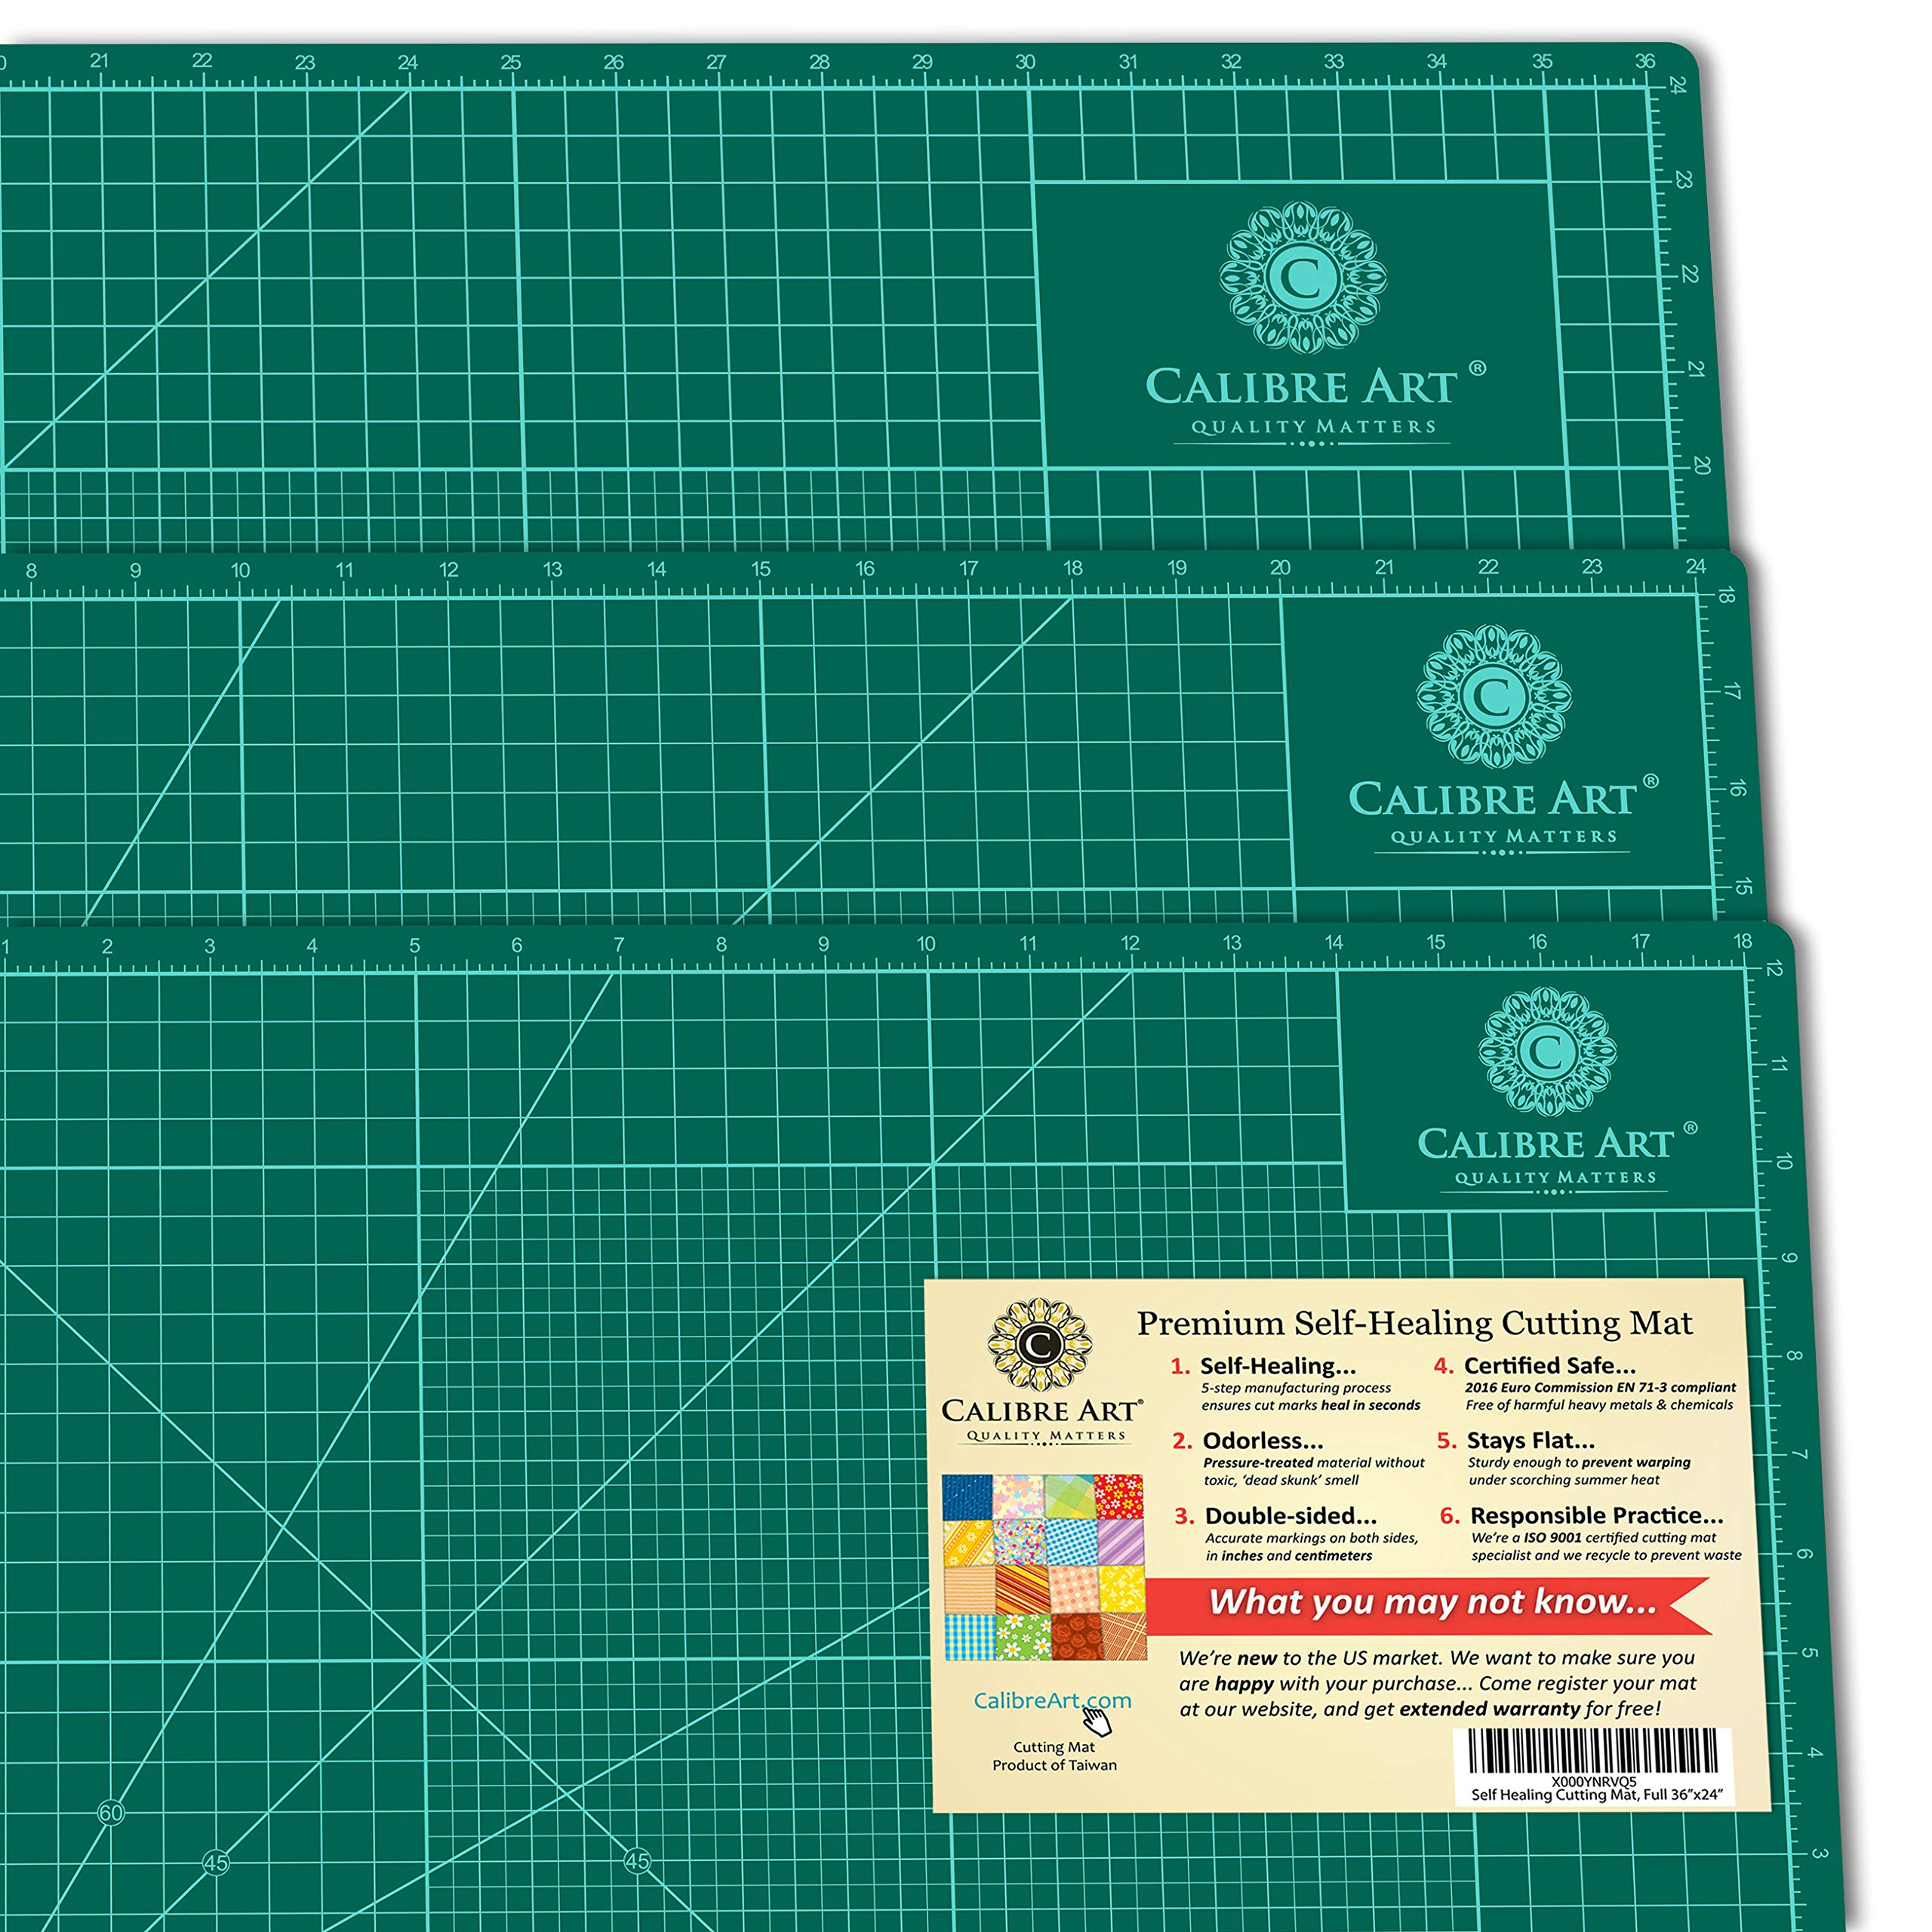 Self Healing Rotary Cutting Mat, Full 24x36, Best for Quilting Sewing | Warp-Proof & Odorless (Not from China) by Calibre Art